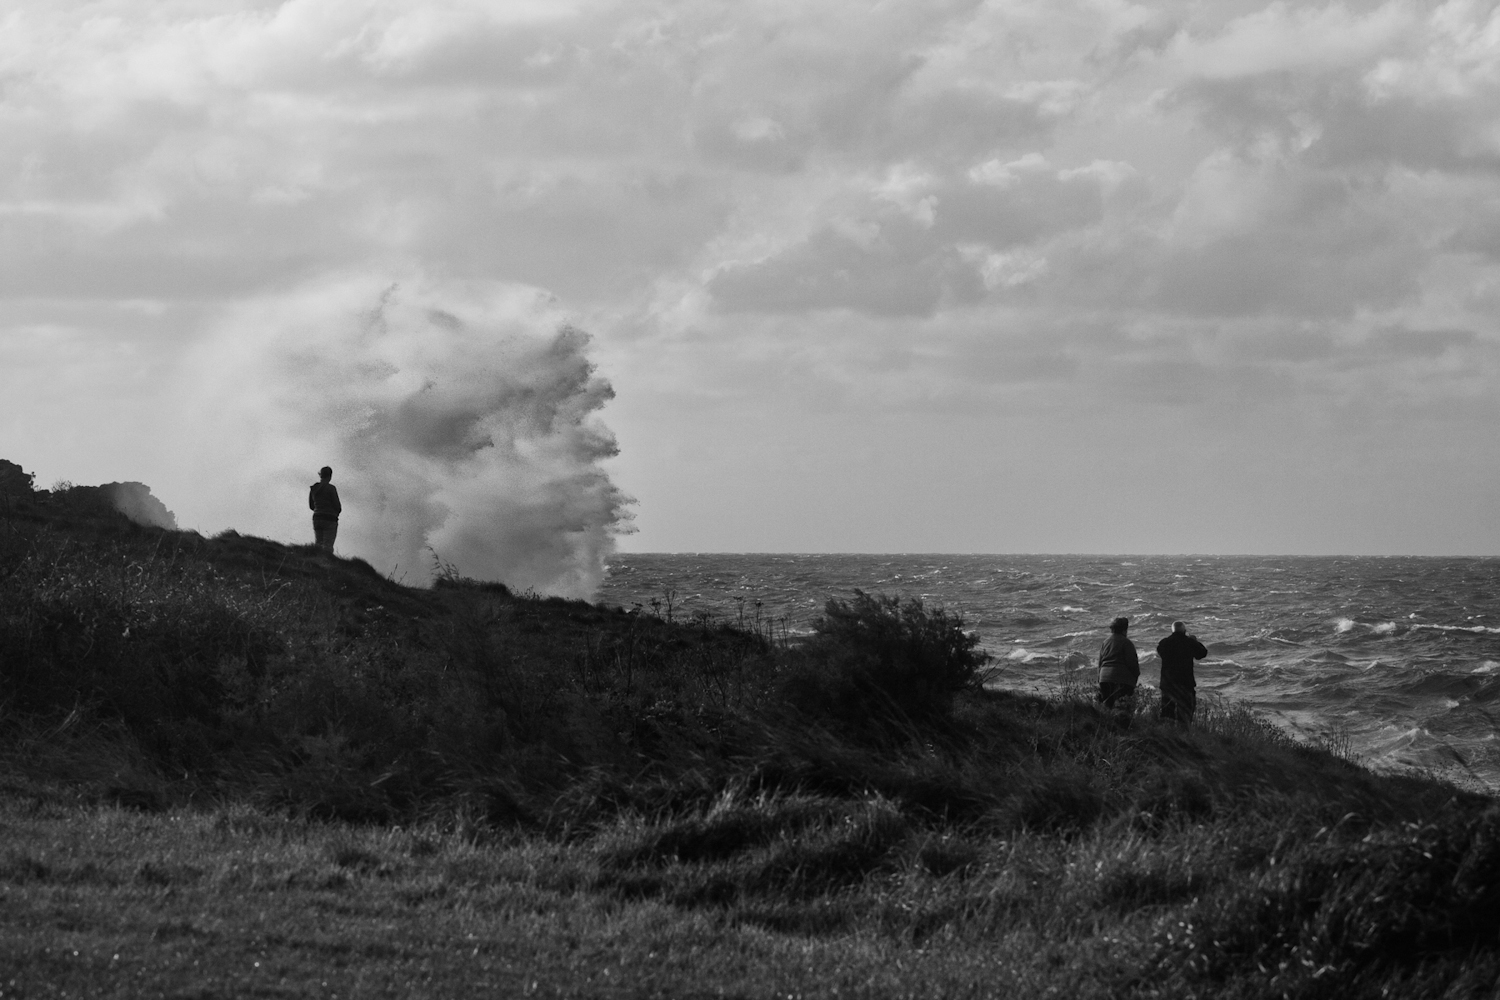 Stormwatchers, Fistral